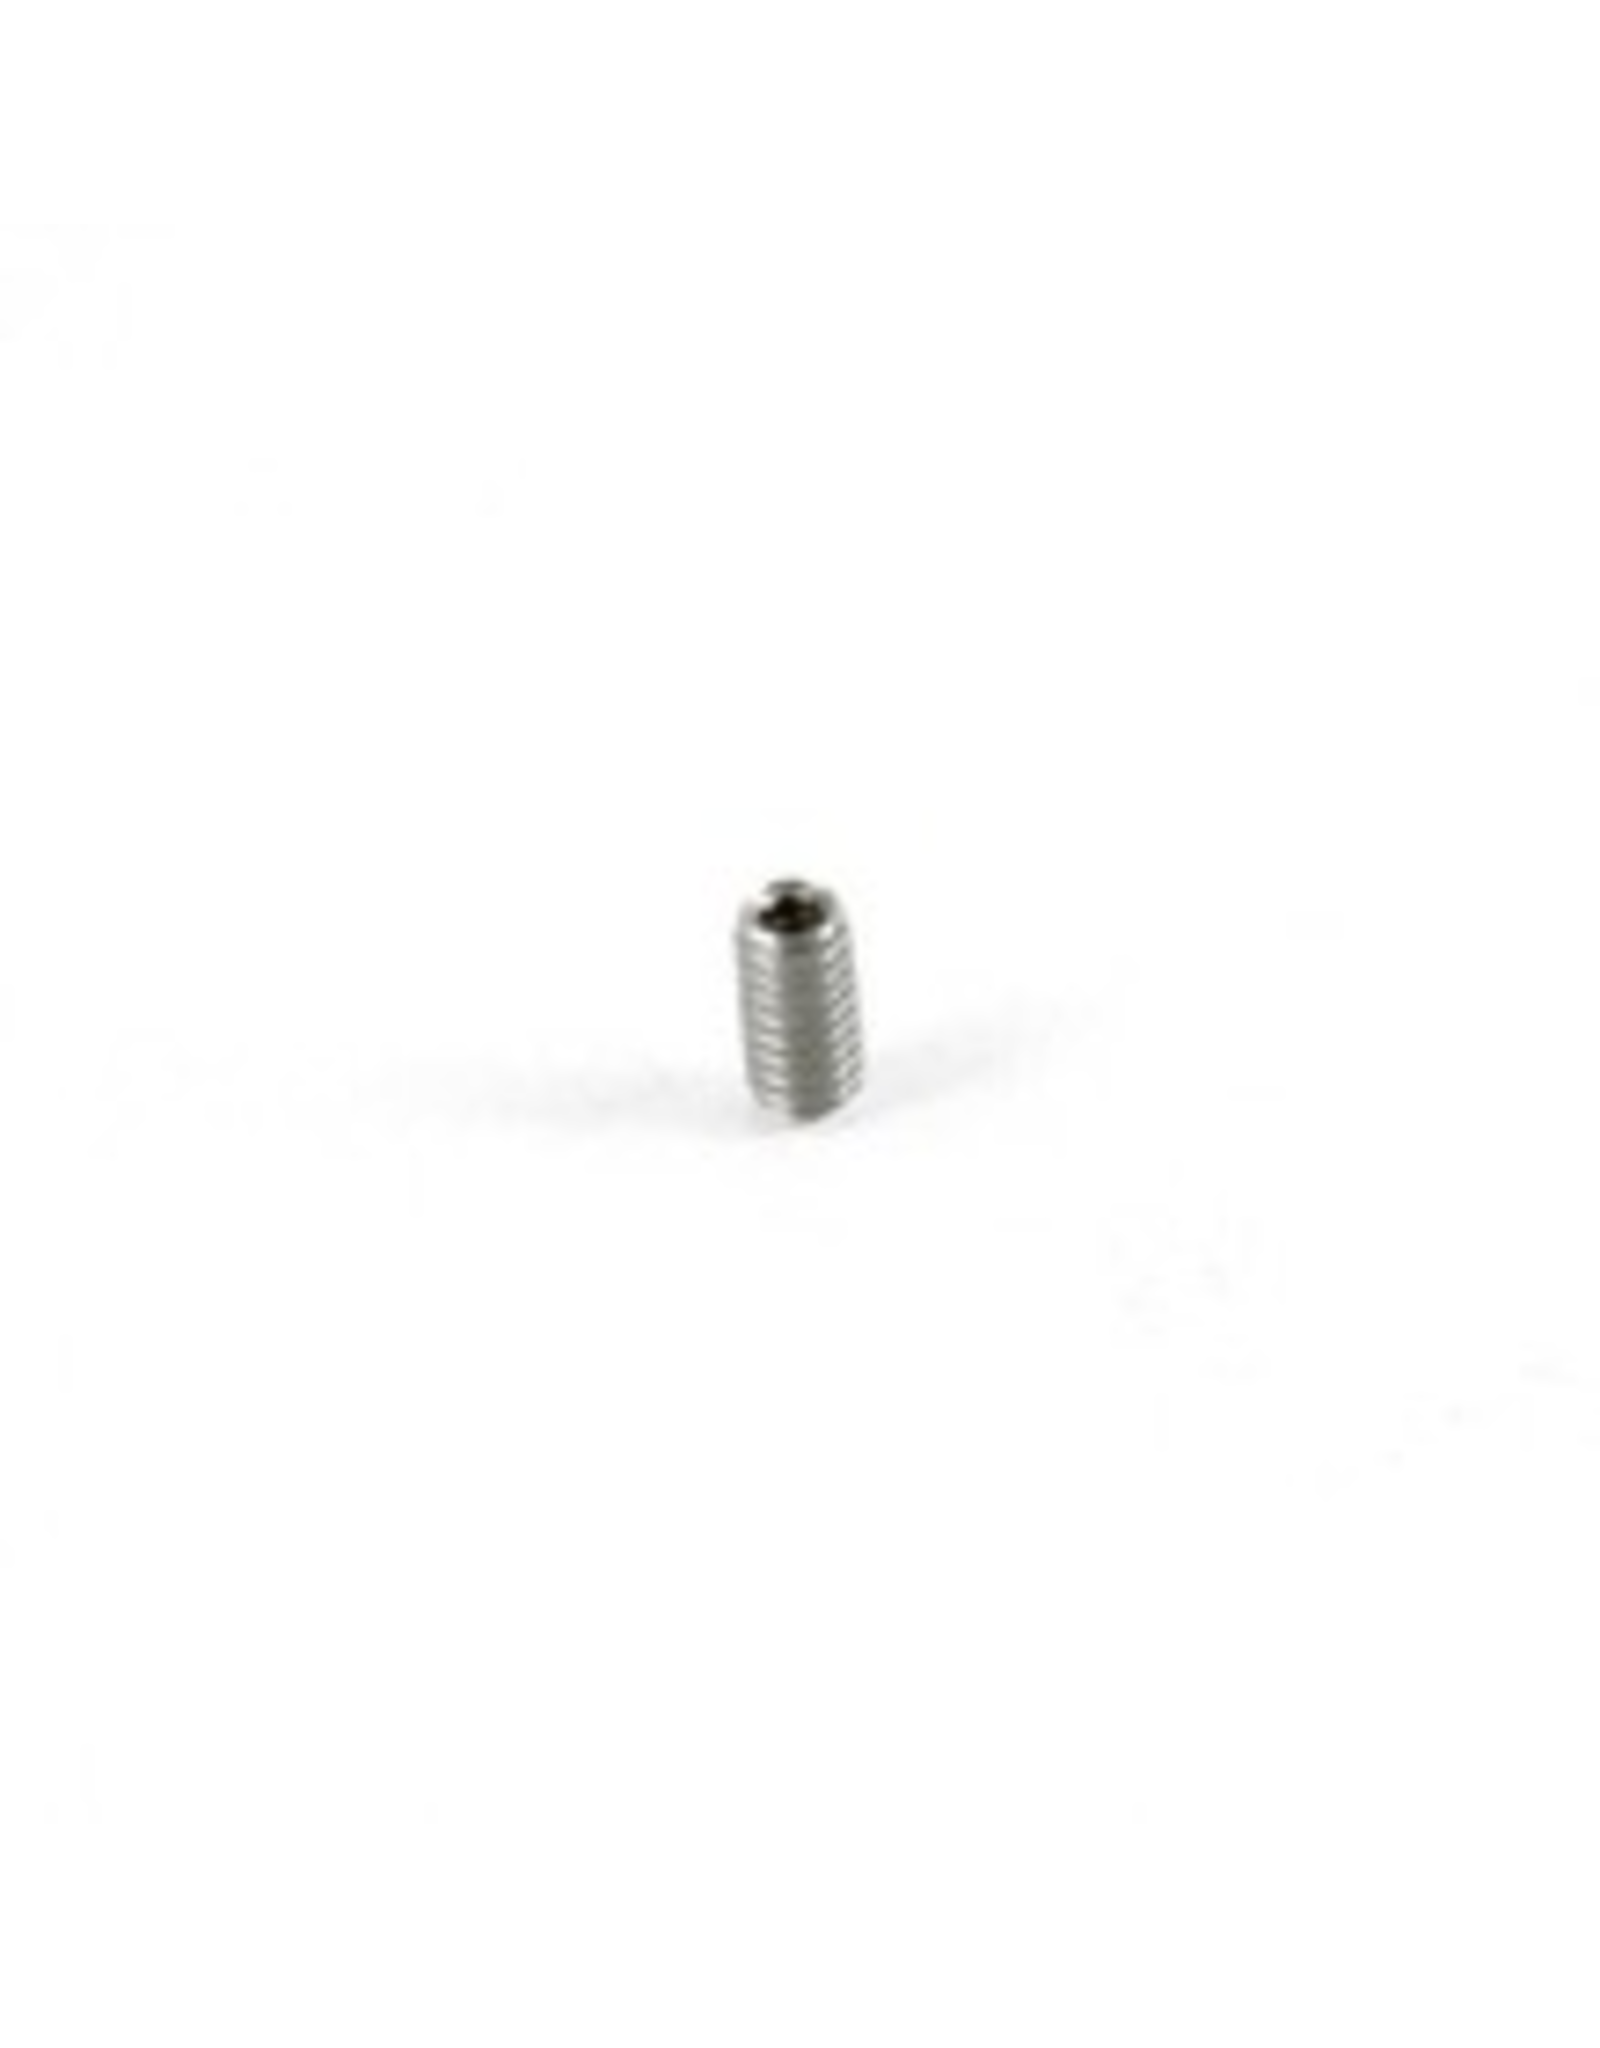 "Hobie Hobie Set Screw 1/4-20 x 1/2"", X-41"